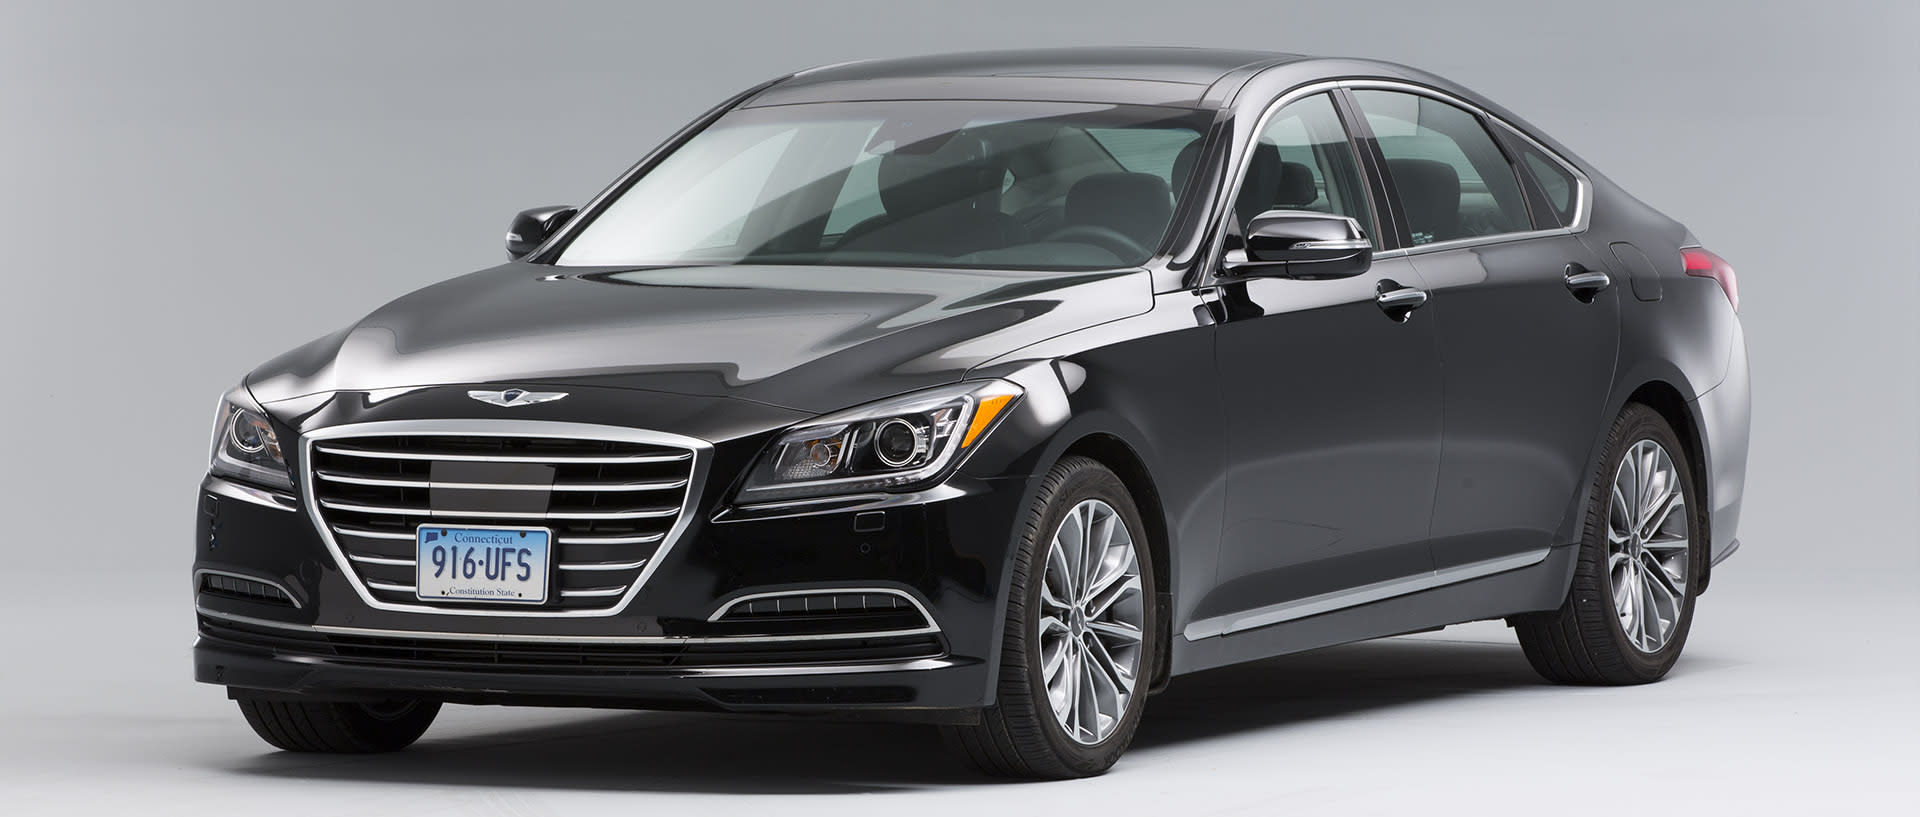 Hyundai Genesis Owners Face Another Tire Replacement Ford Focus 2 3 Engine Diagram